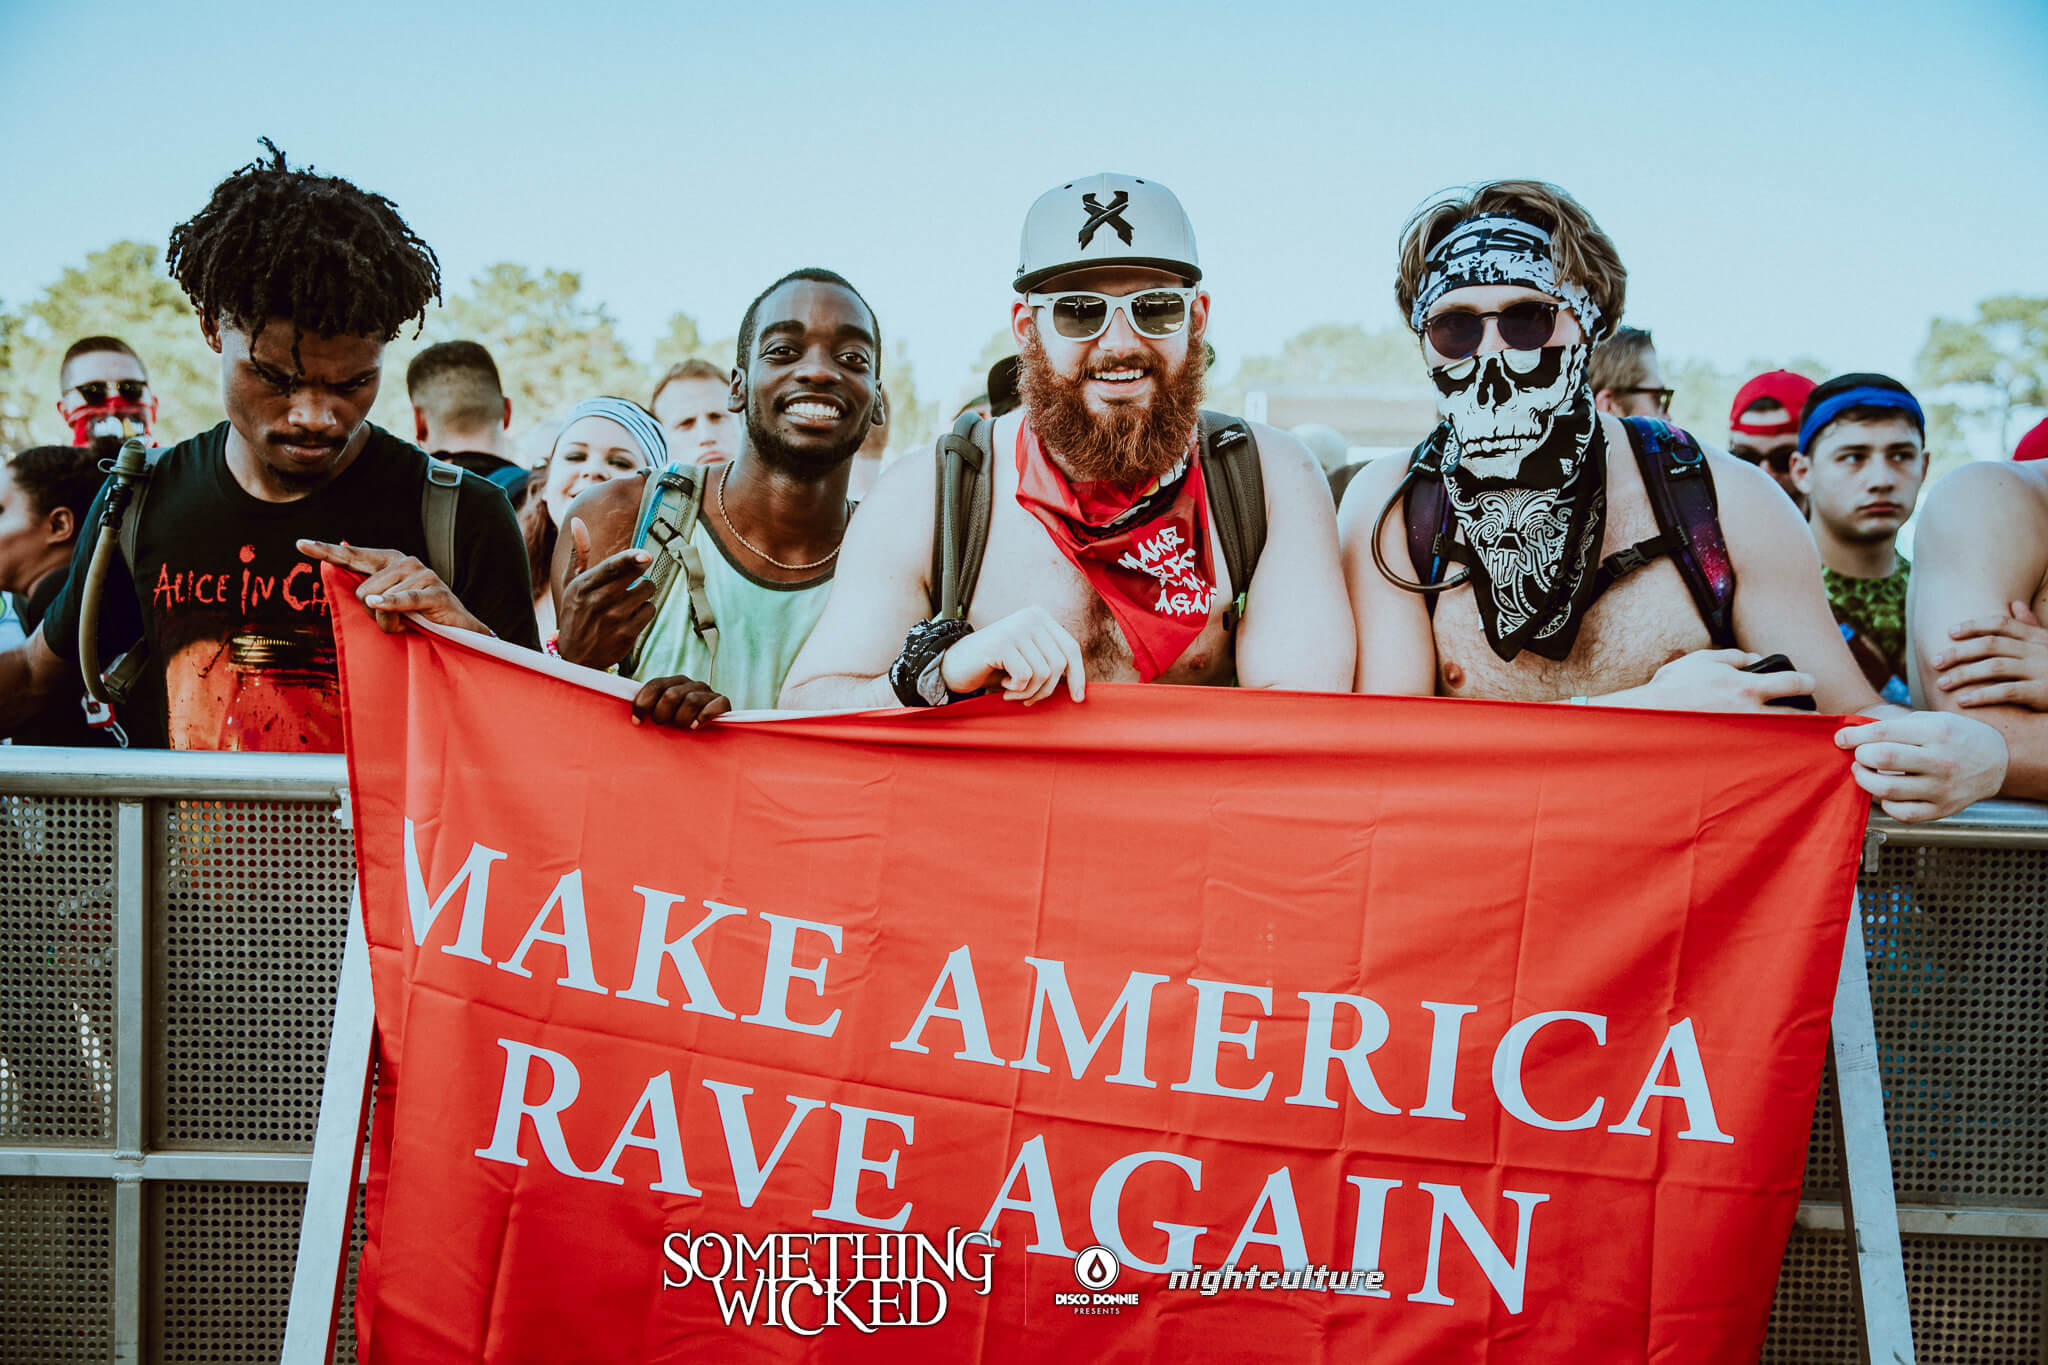 make america rave again flag at something wicked festival